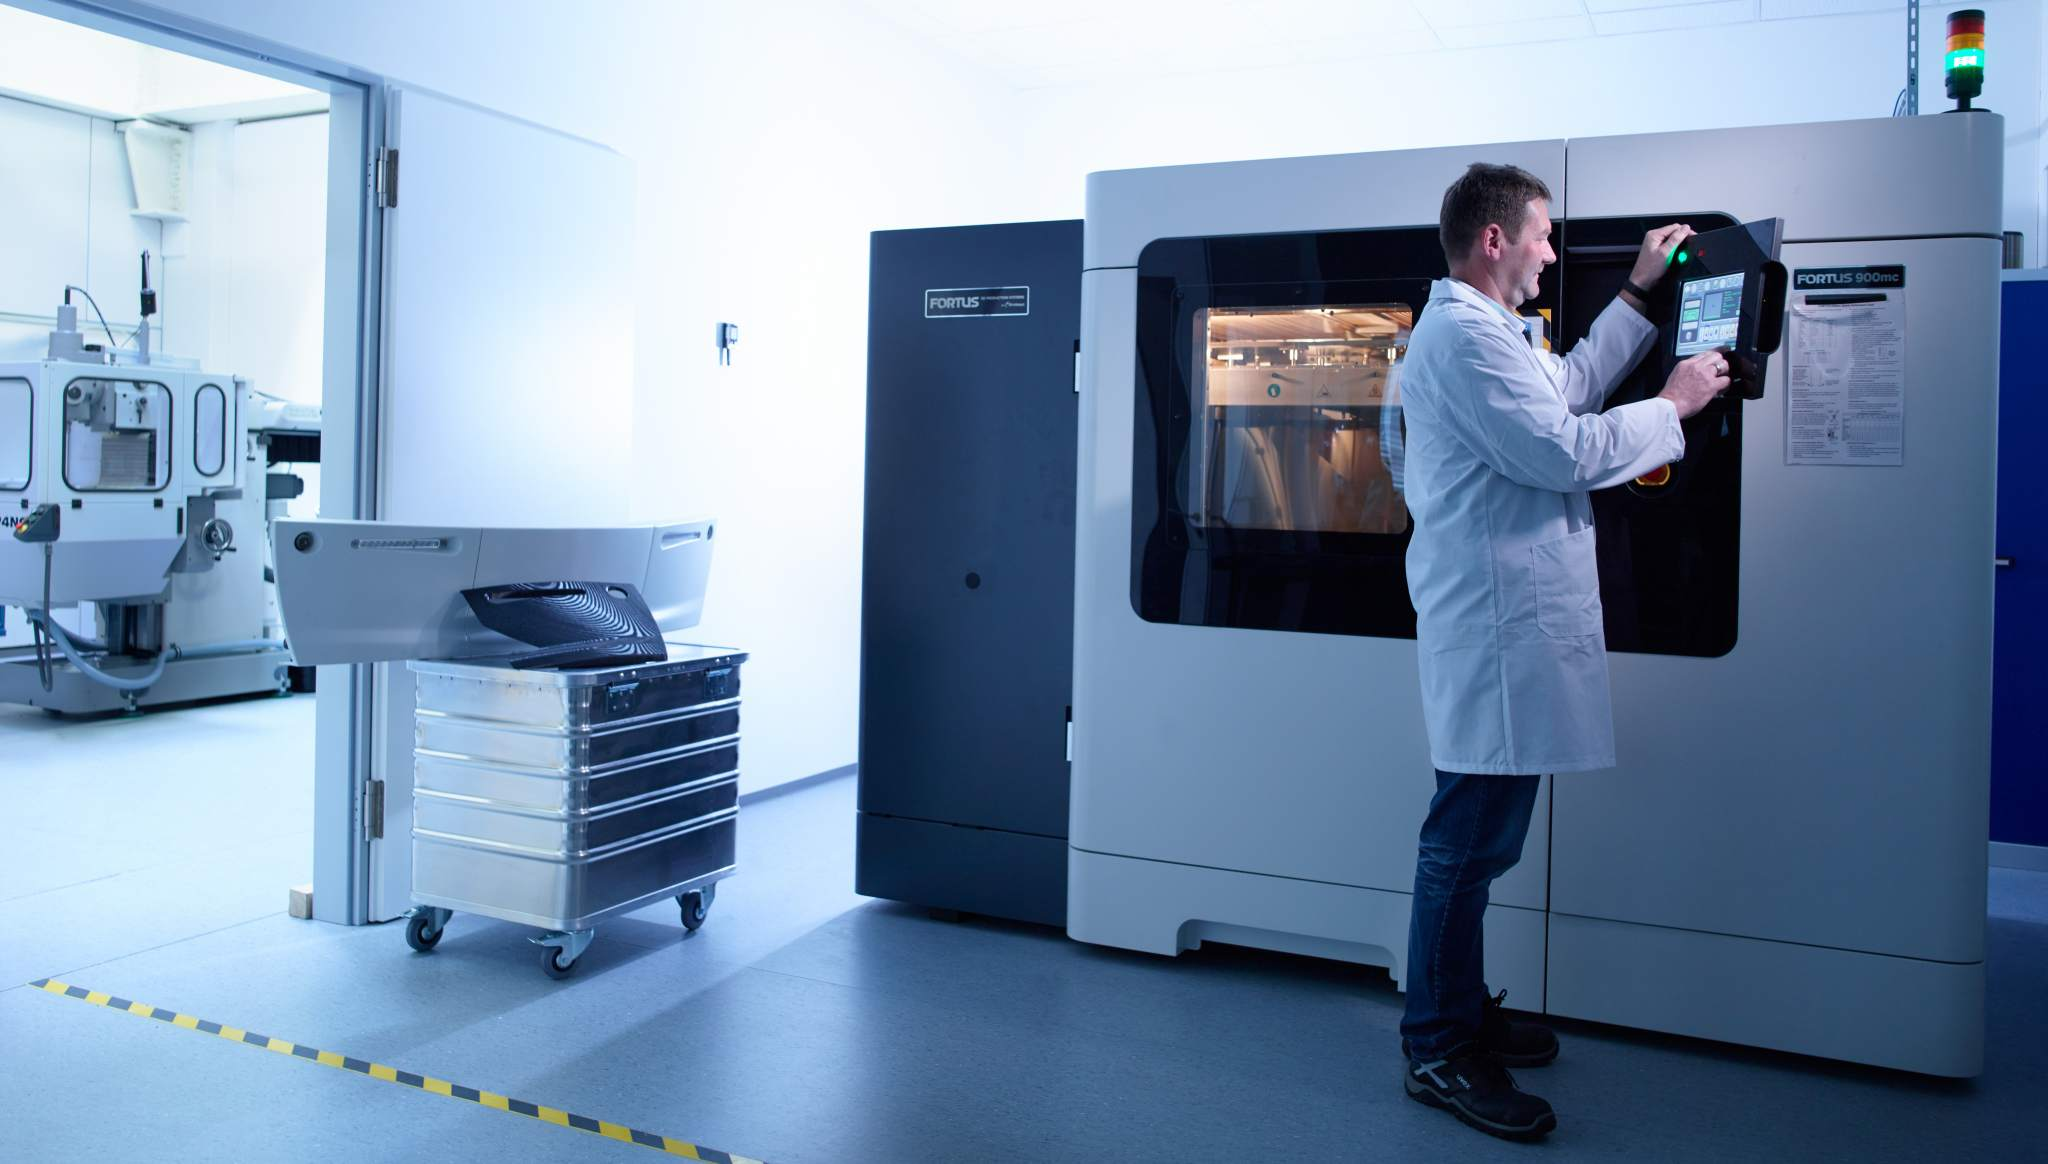 Siemens Mobility is using its Fortus 900mc Production 3D Printer and Stratasys synthetic materials to 3D print customized production parts for trams